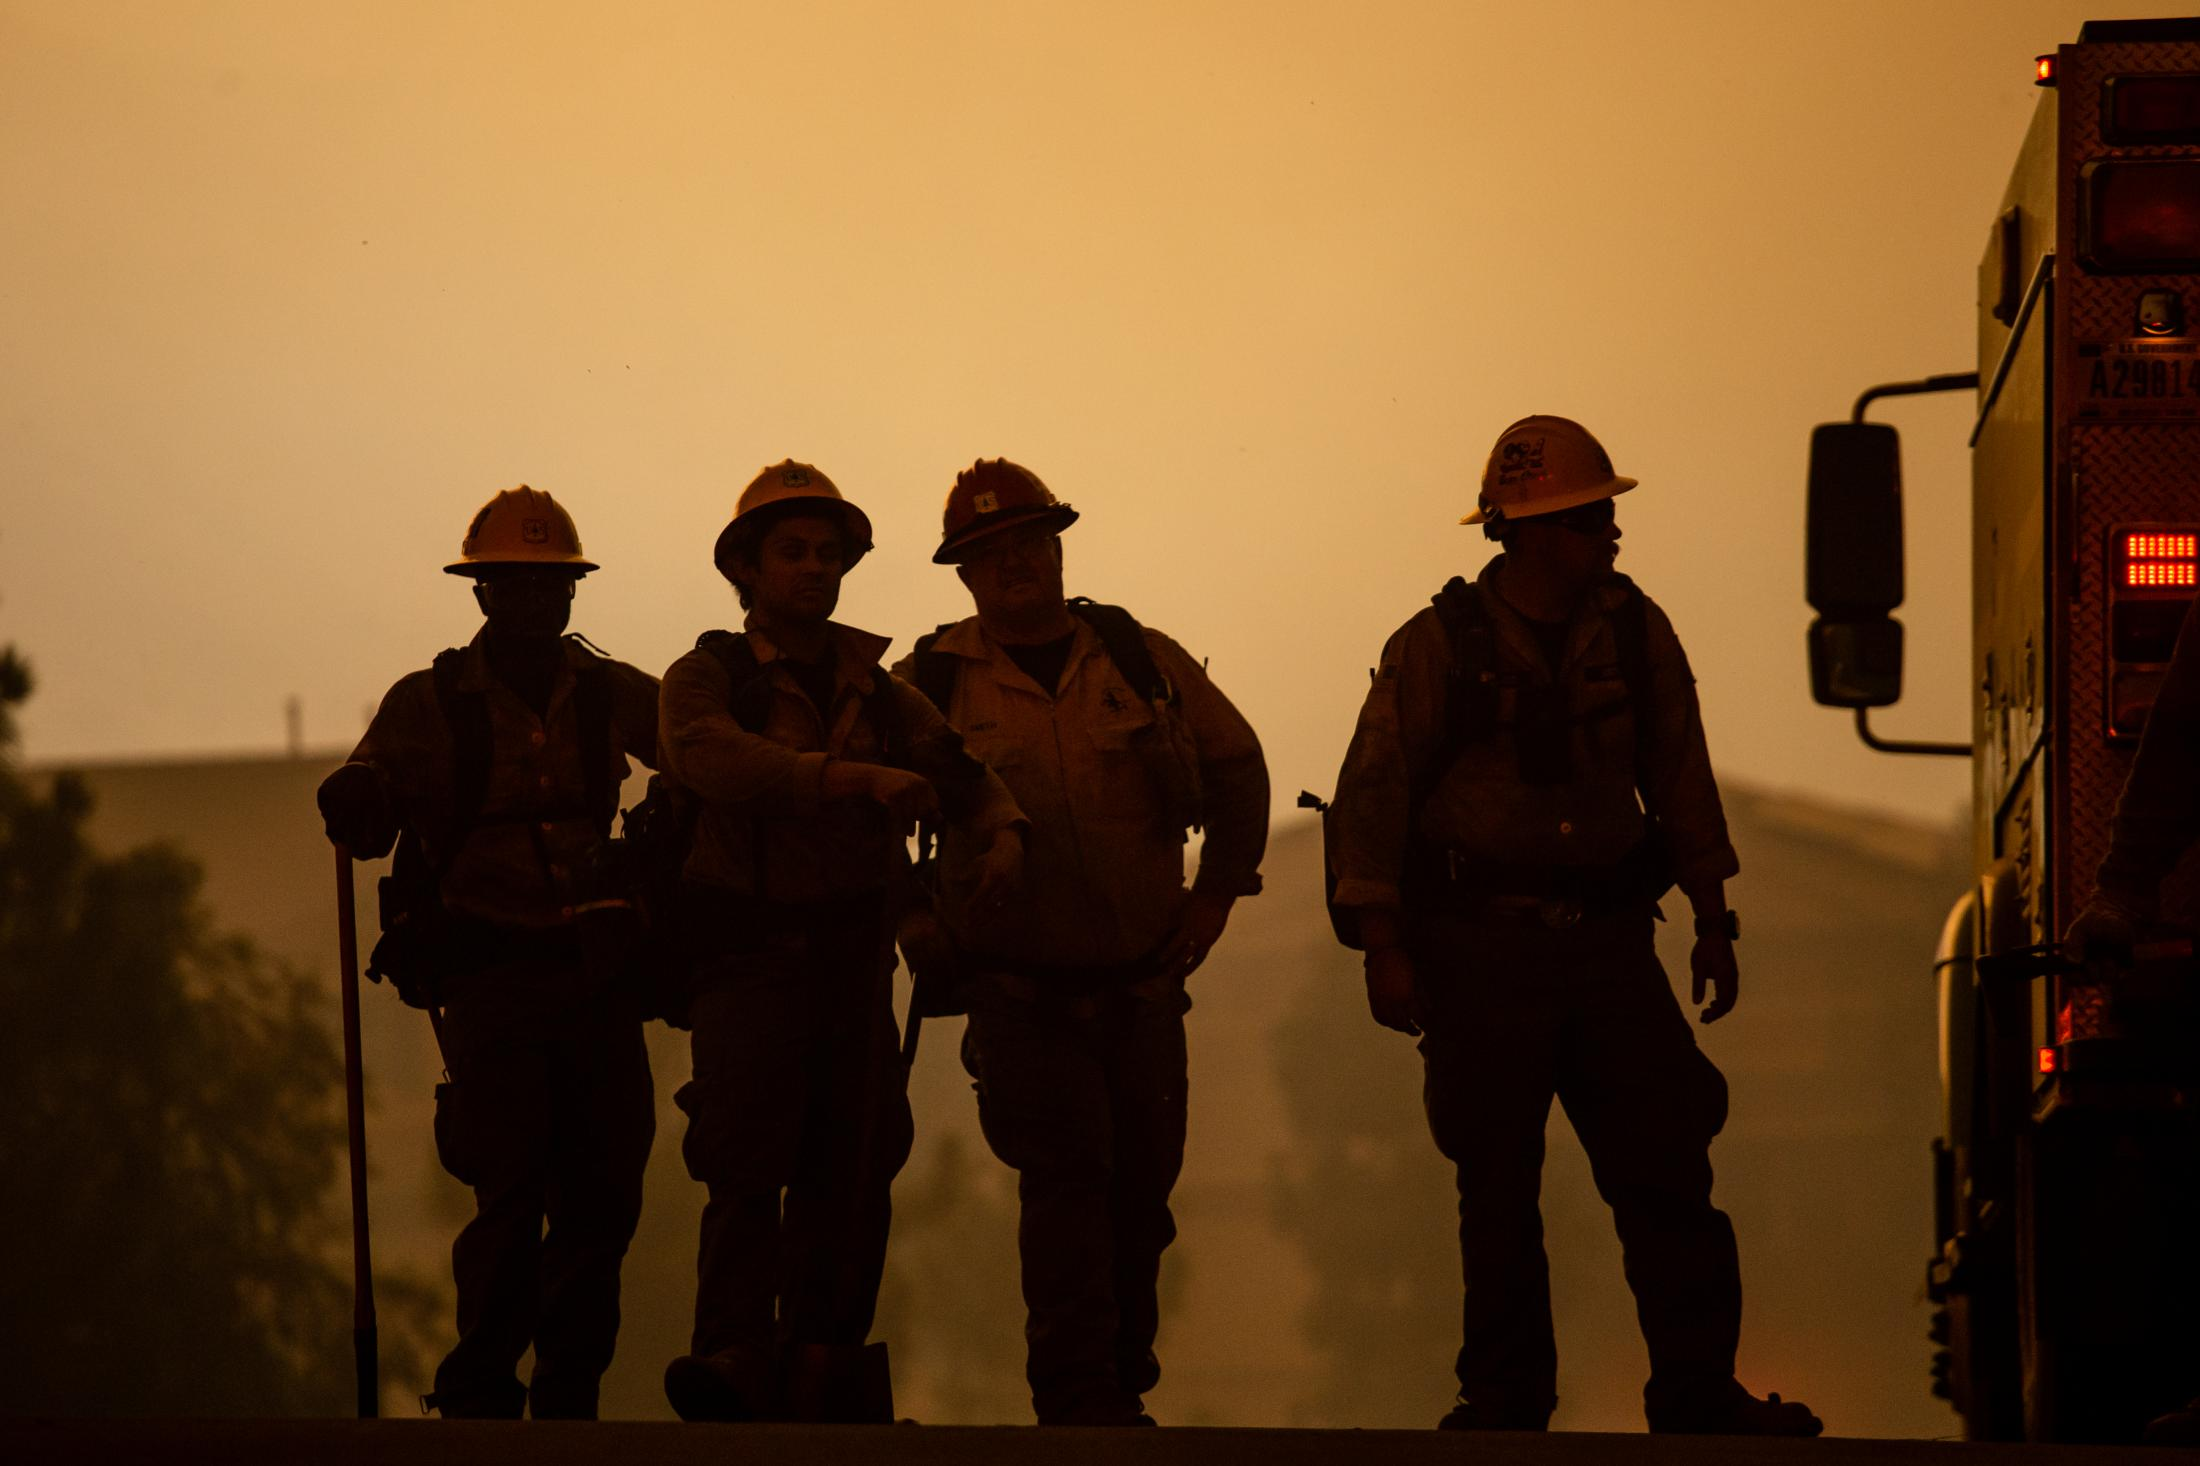 A group of firefighters from Texas gathers together when arriving at the frontline of the wildfire. Many outside departments have volunteered to help California battle the blaze.